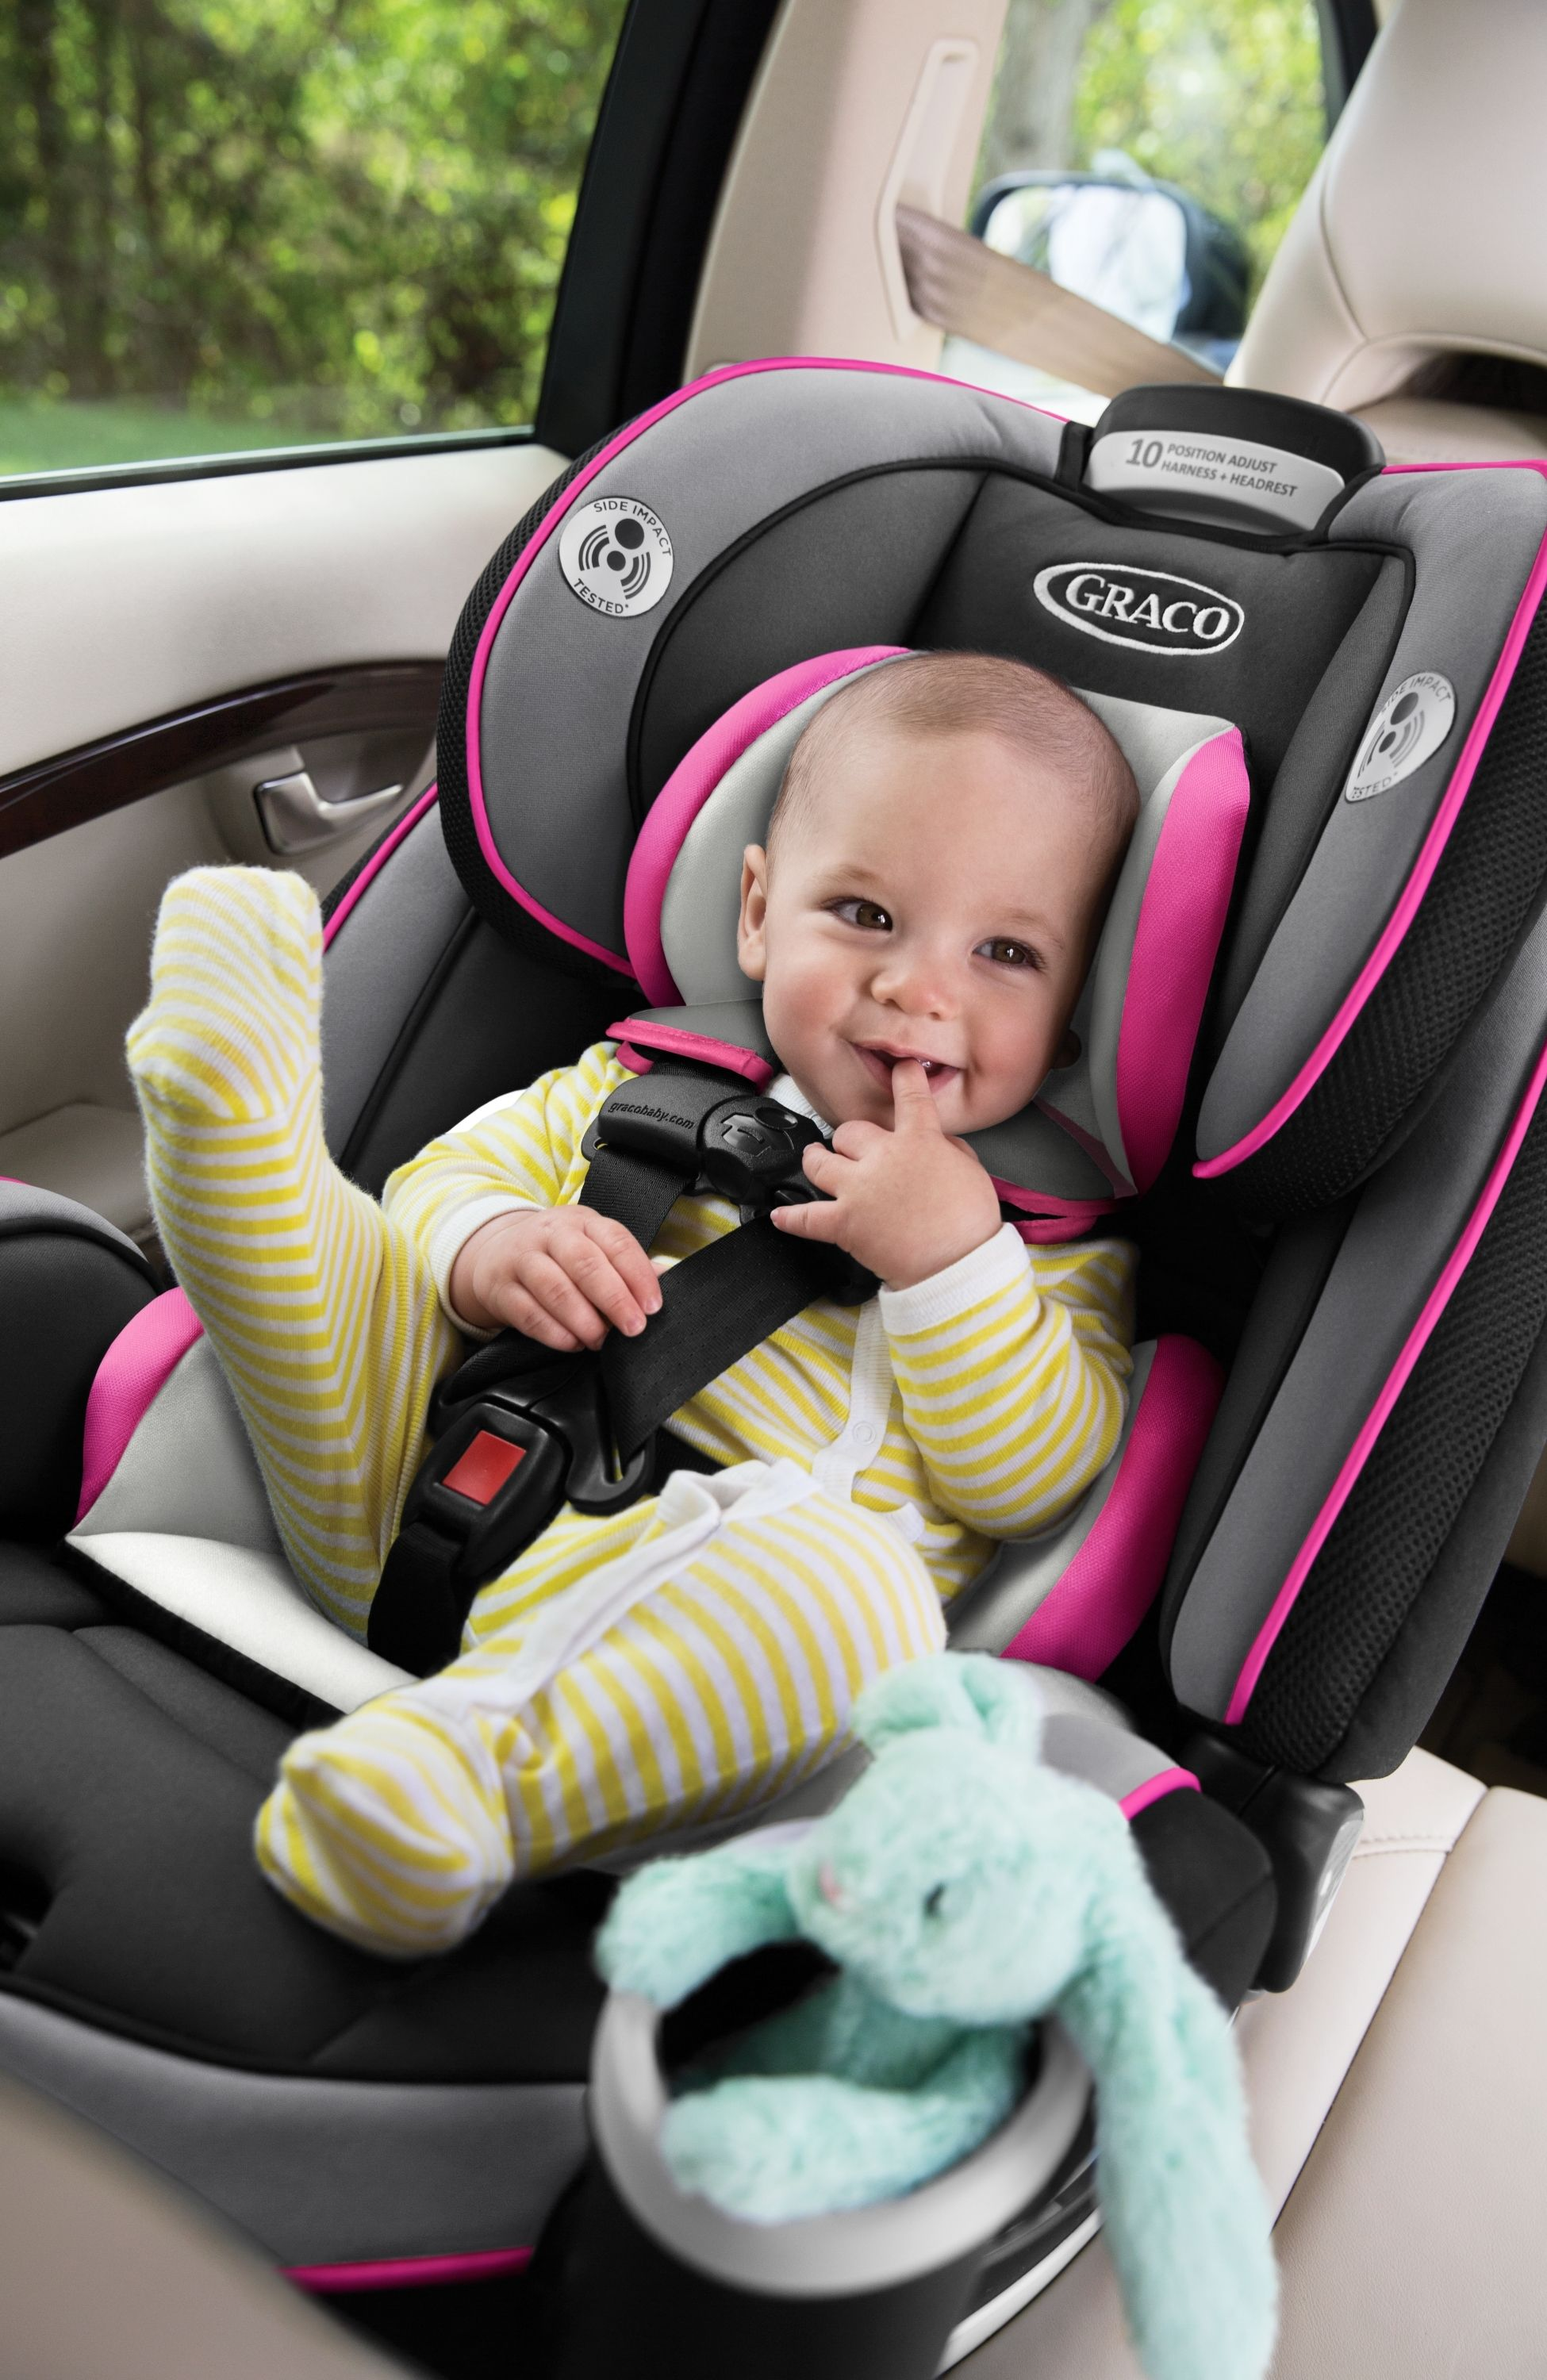 The Graco 4Ever AllinOne Car Seat in Kylie is the only